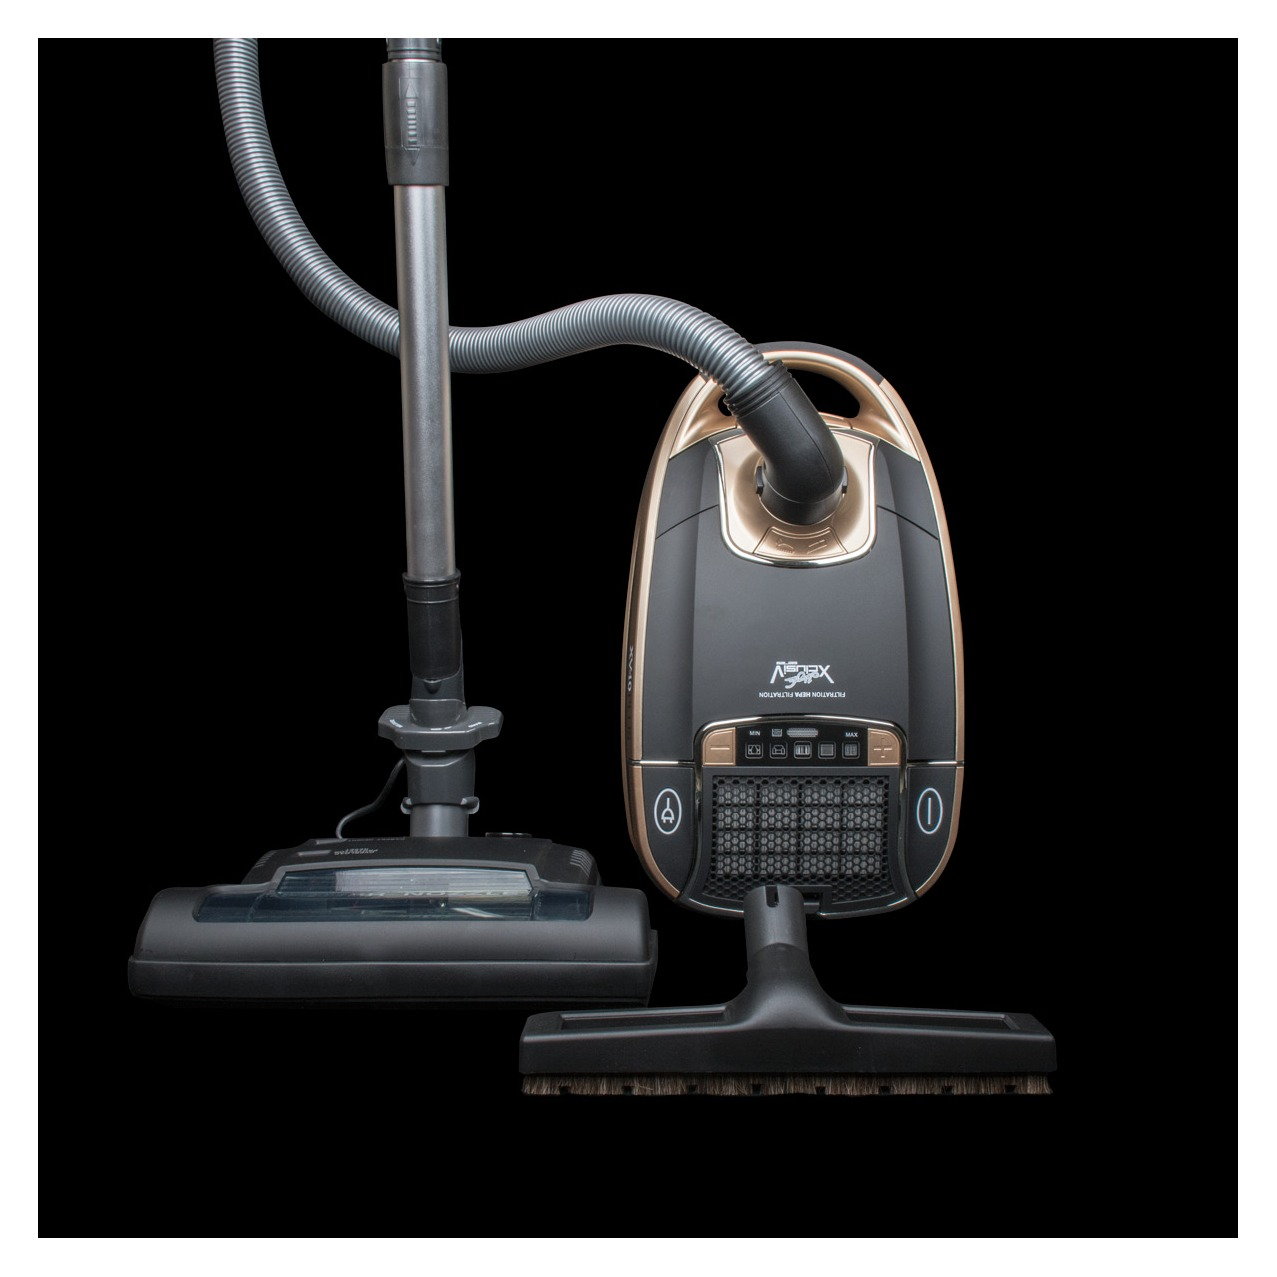 https://www.speedyvacuum.ca/public/uploads/products_photo/5b0ec17b08868.jpg